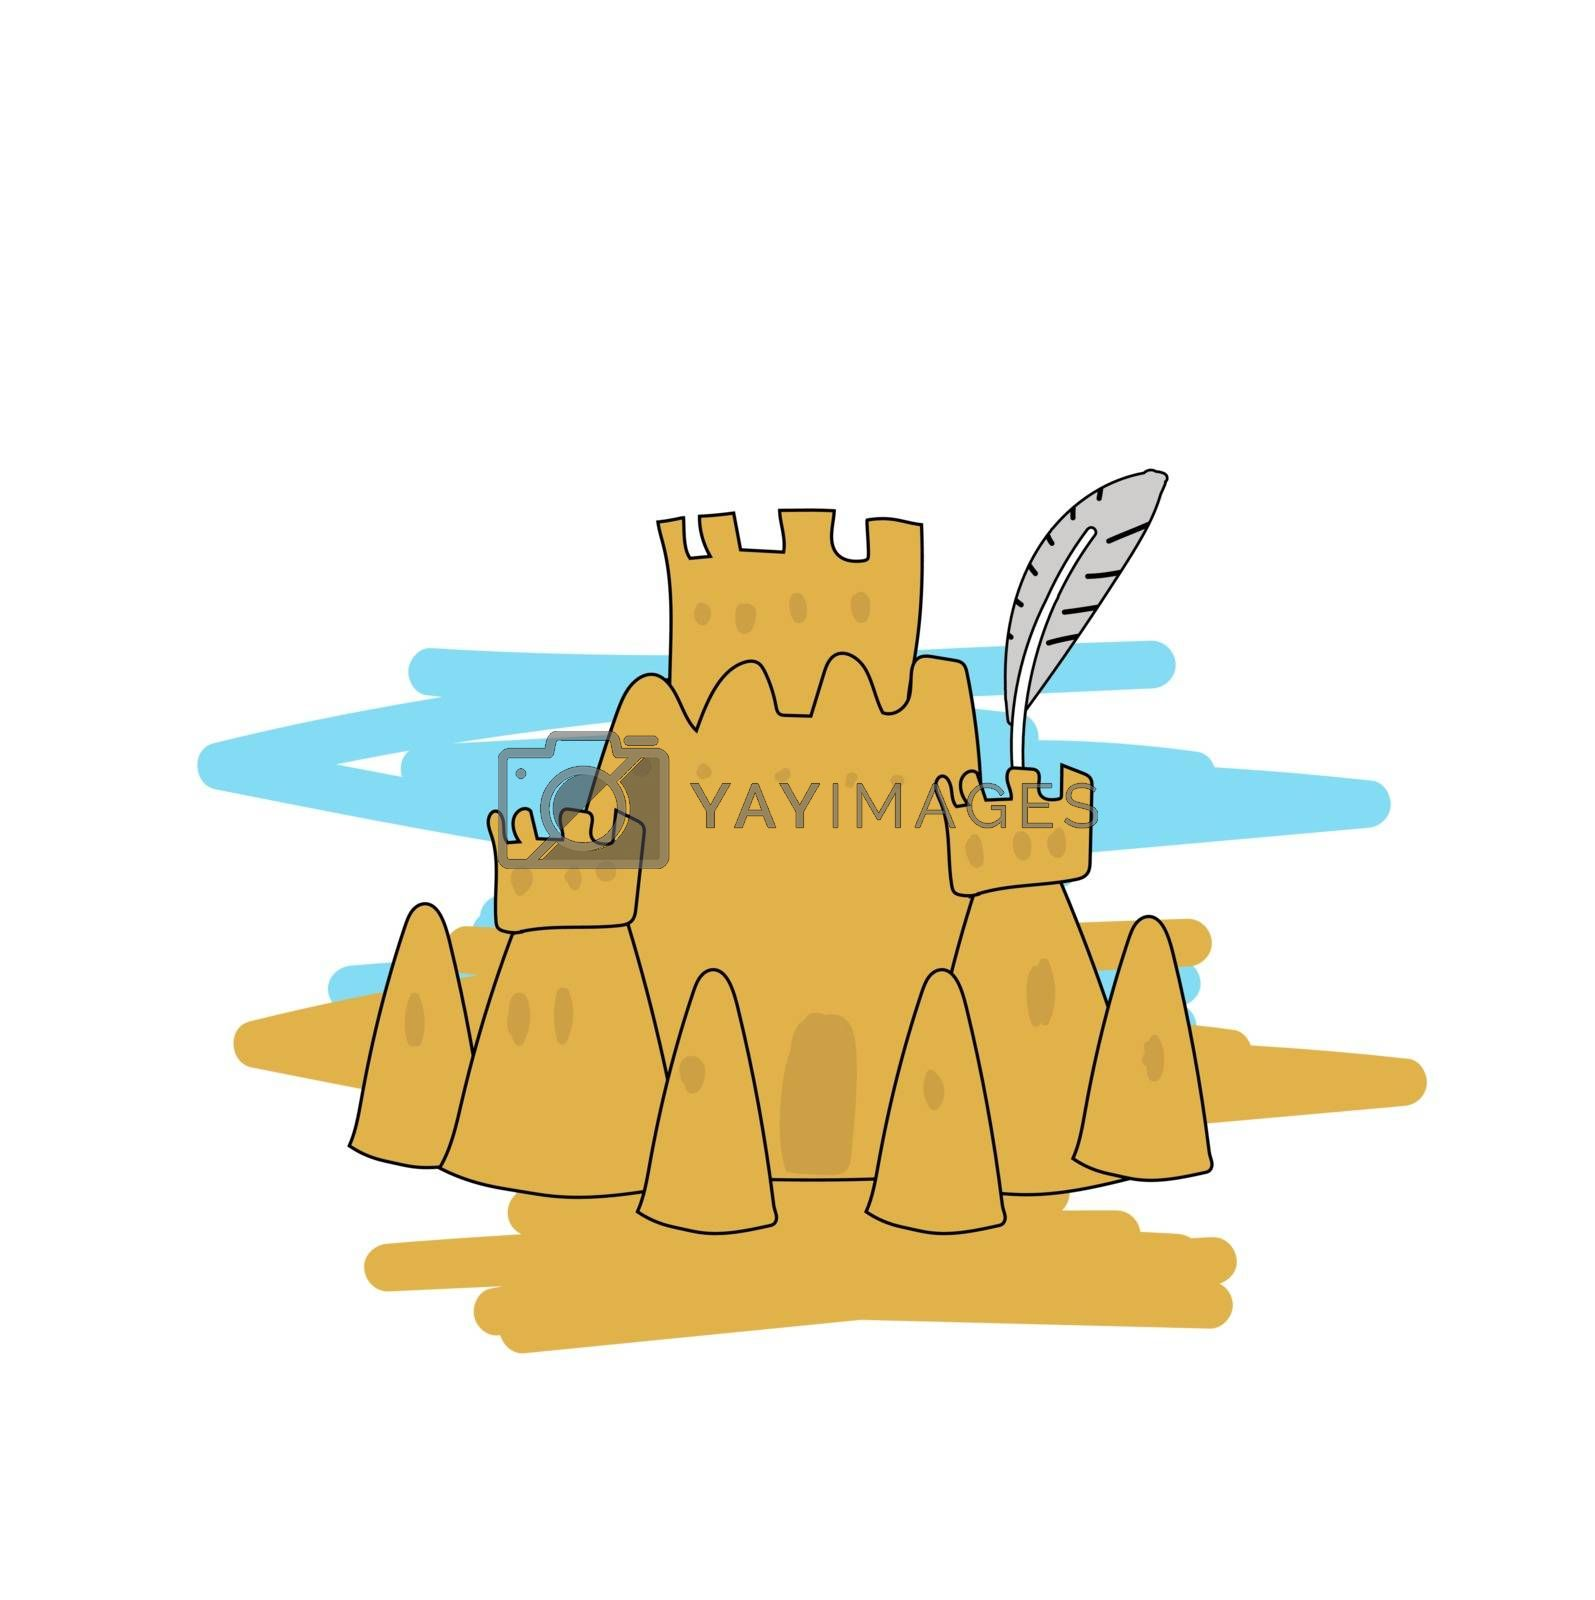 Tower of raw sand. Sand castle. Vector illustration in hand-drawn style